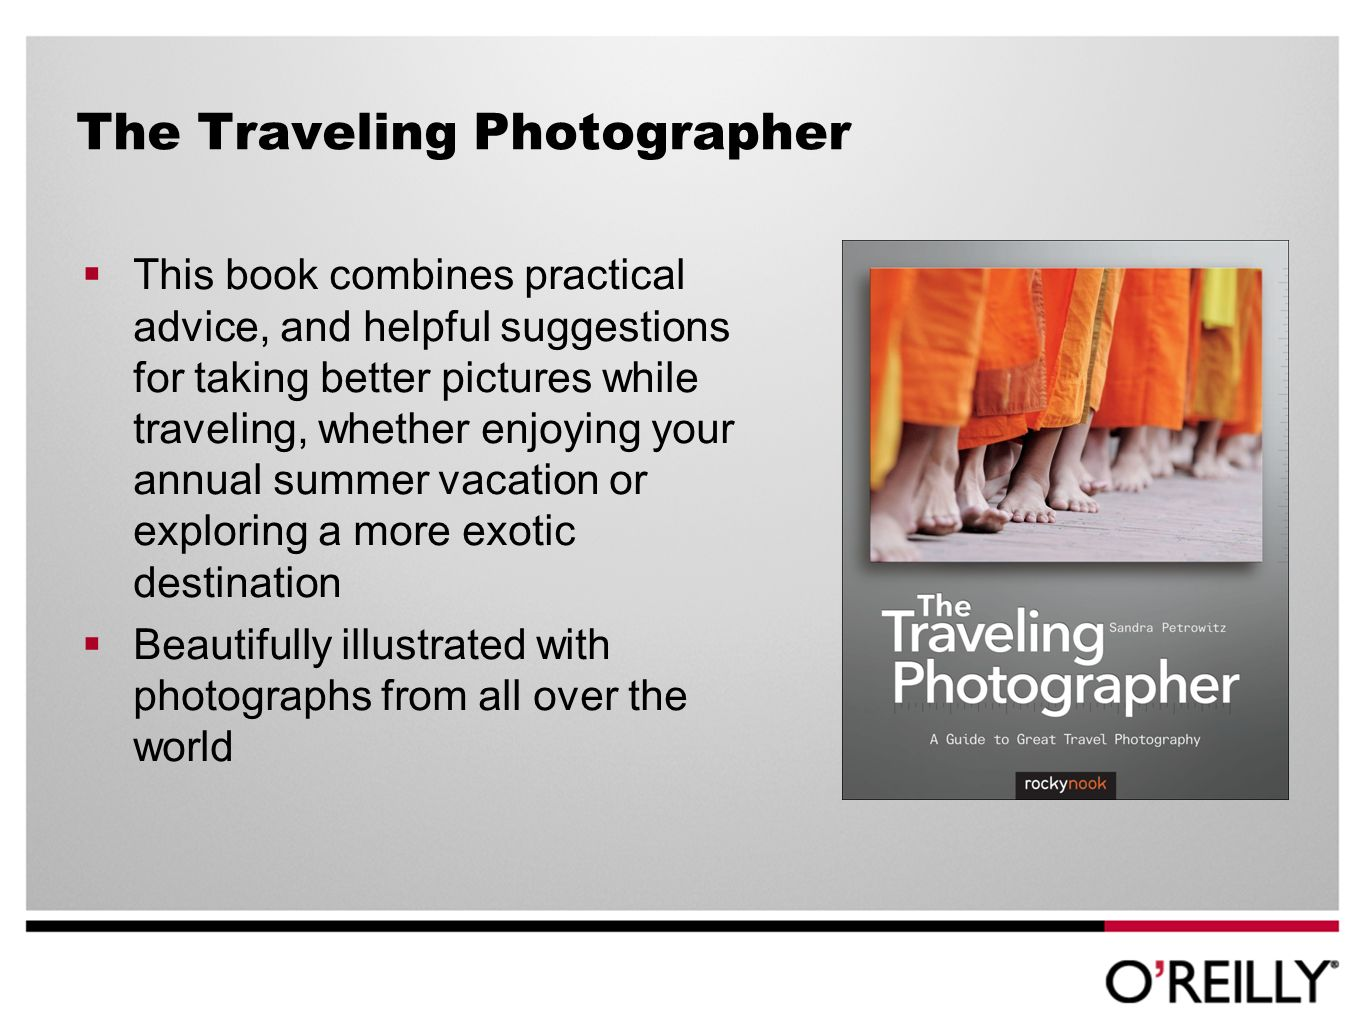 The Traveling Photographer This book combines practical advice, and helpful suggestions for taking better pictures while traveling, whether enjoying your annual summer vacation or exploring a more exotic destination Beautifully illustrated with photographs from all over the world